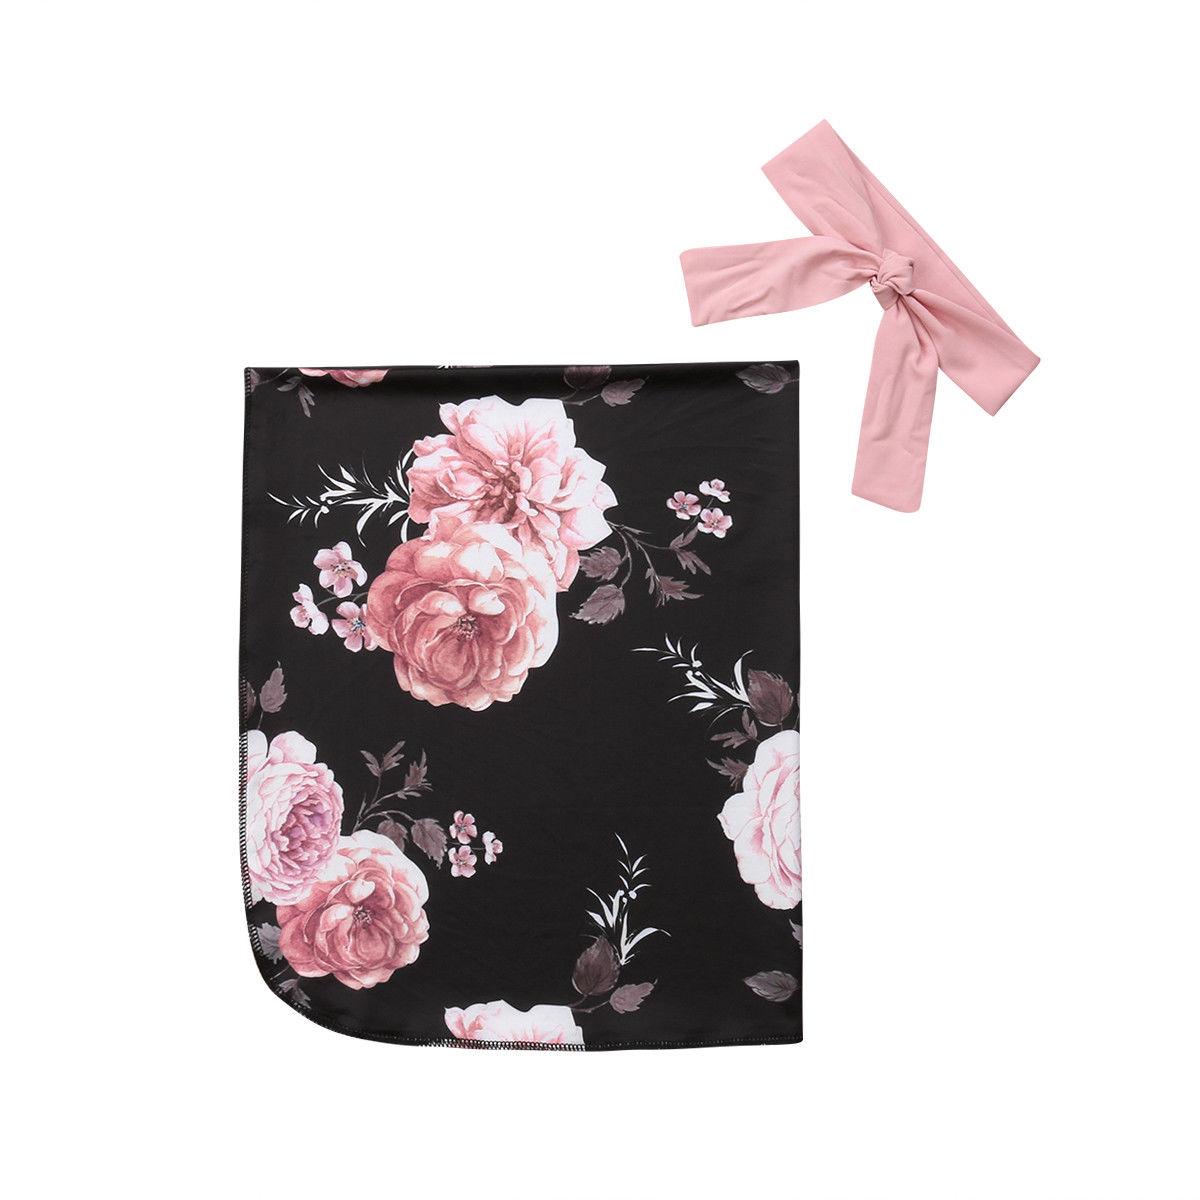 Newborn Swaddle Blanket Baby Swaddling Floral Muslin Wrap +Headband 2Pcs Outfits Cotton Infant Wrap